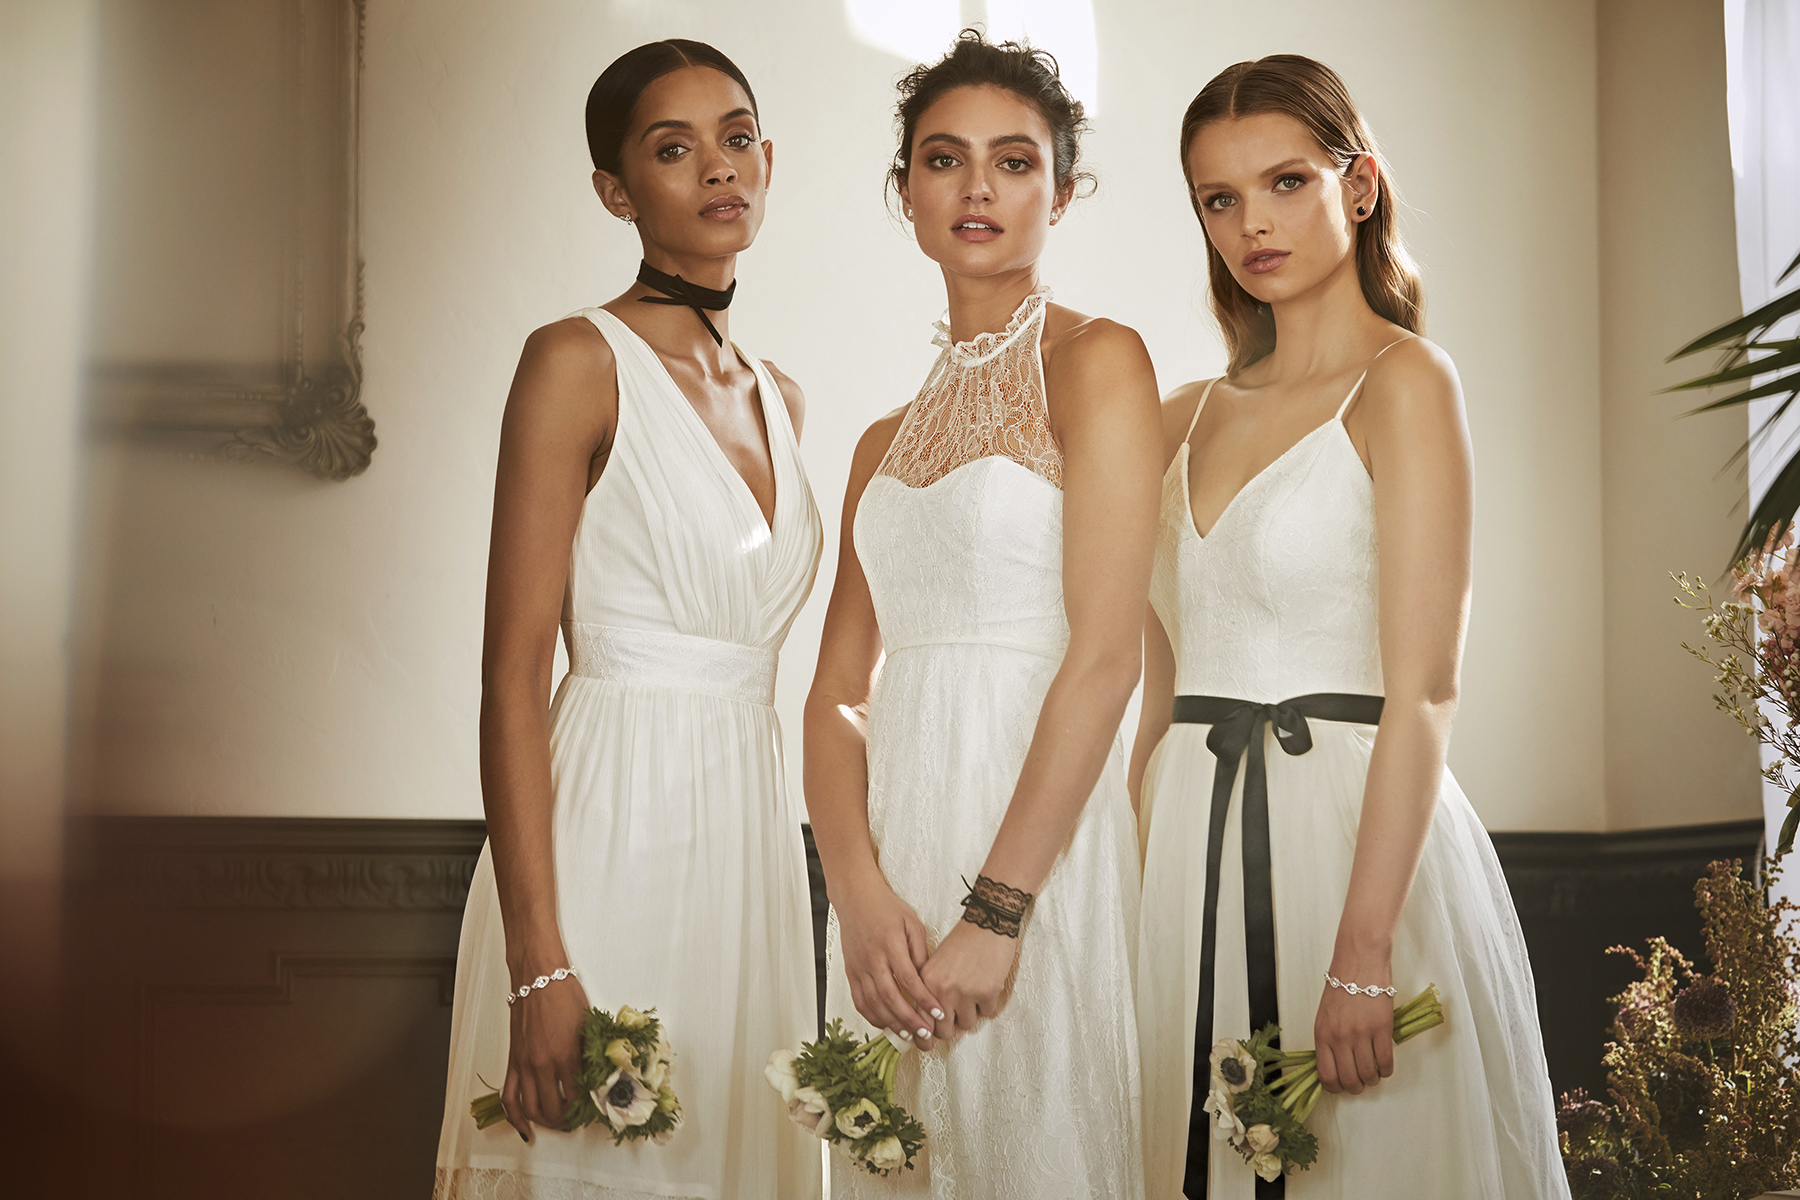 White bridesmaid dresses are a chic and timeless choice. Read more about an all-white bridal party on the David's Bridal blog - www.davidsbridal.com/blog